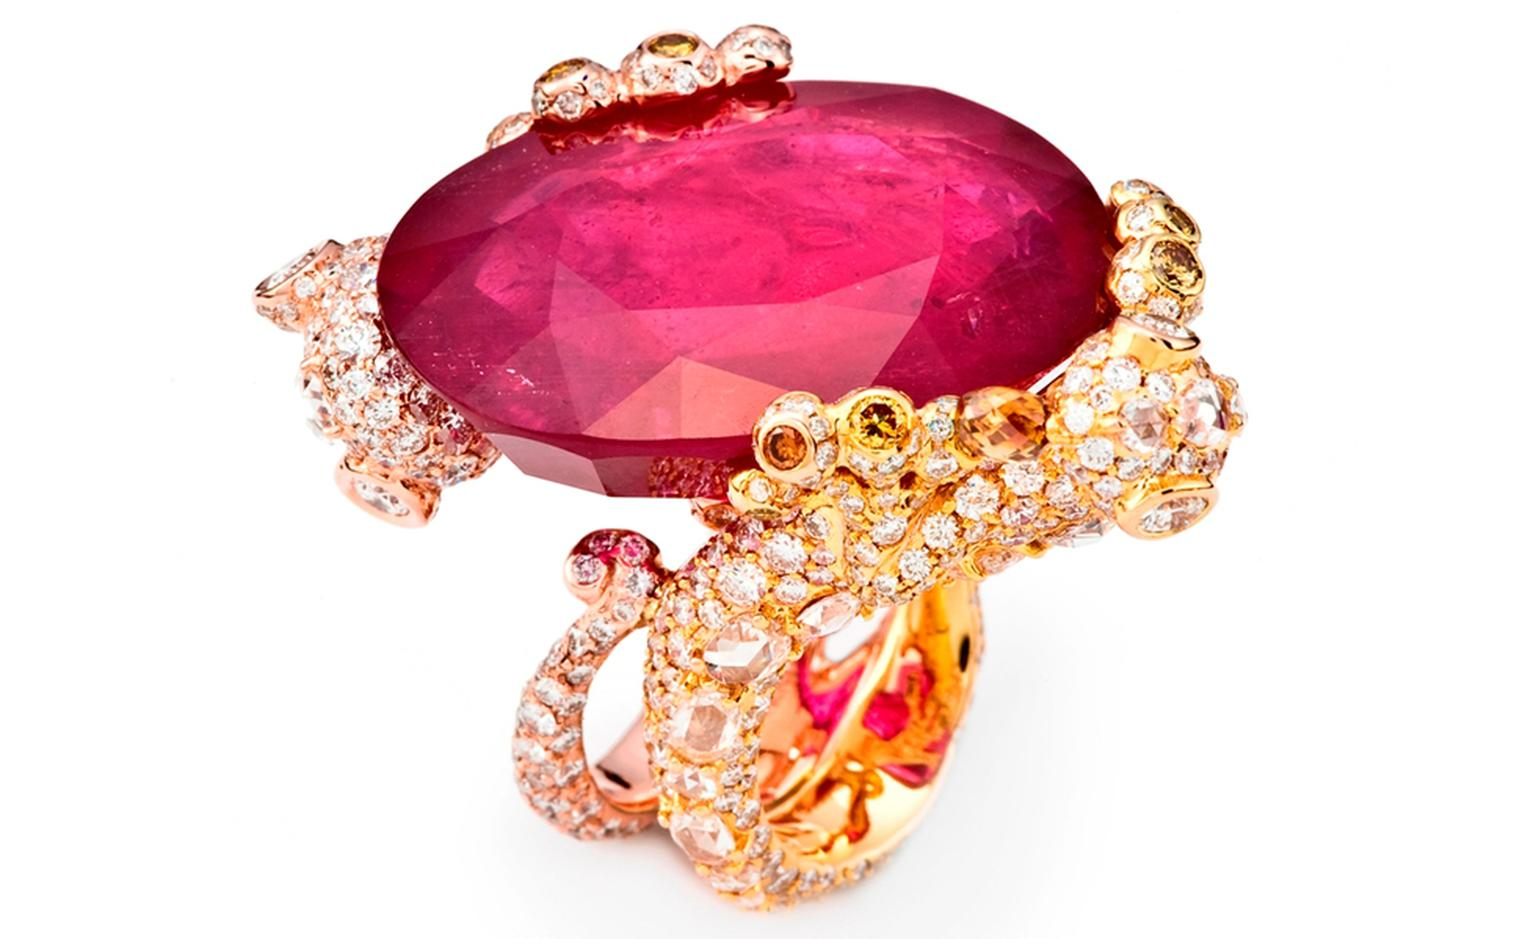 CINDY CHAO, The Art Jewel, White Label Collection Gecko Ring. Oval cut ruby (61.26cts) highlighted by colorless and yellow diamonds set in 18kt gold. From ?41,000